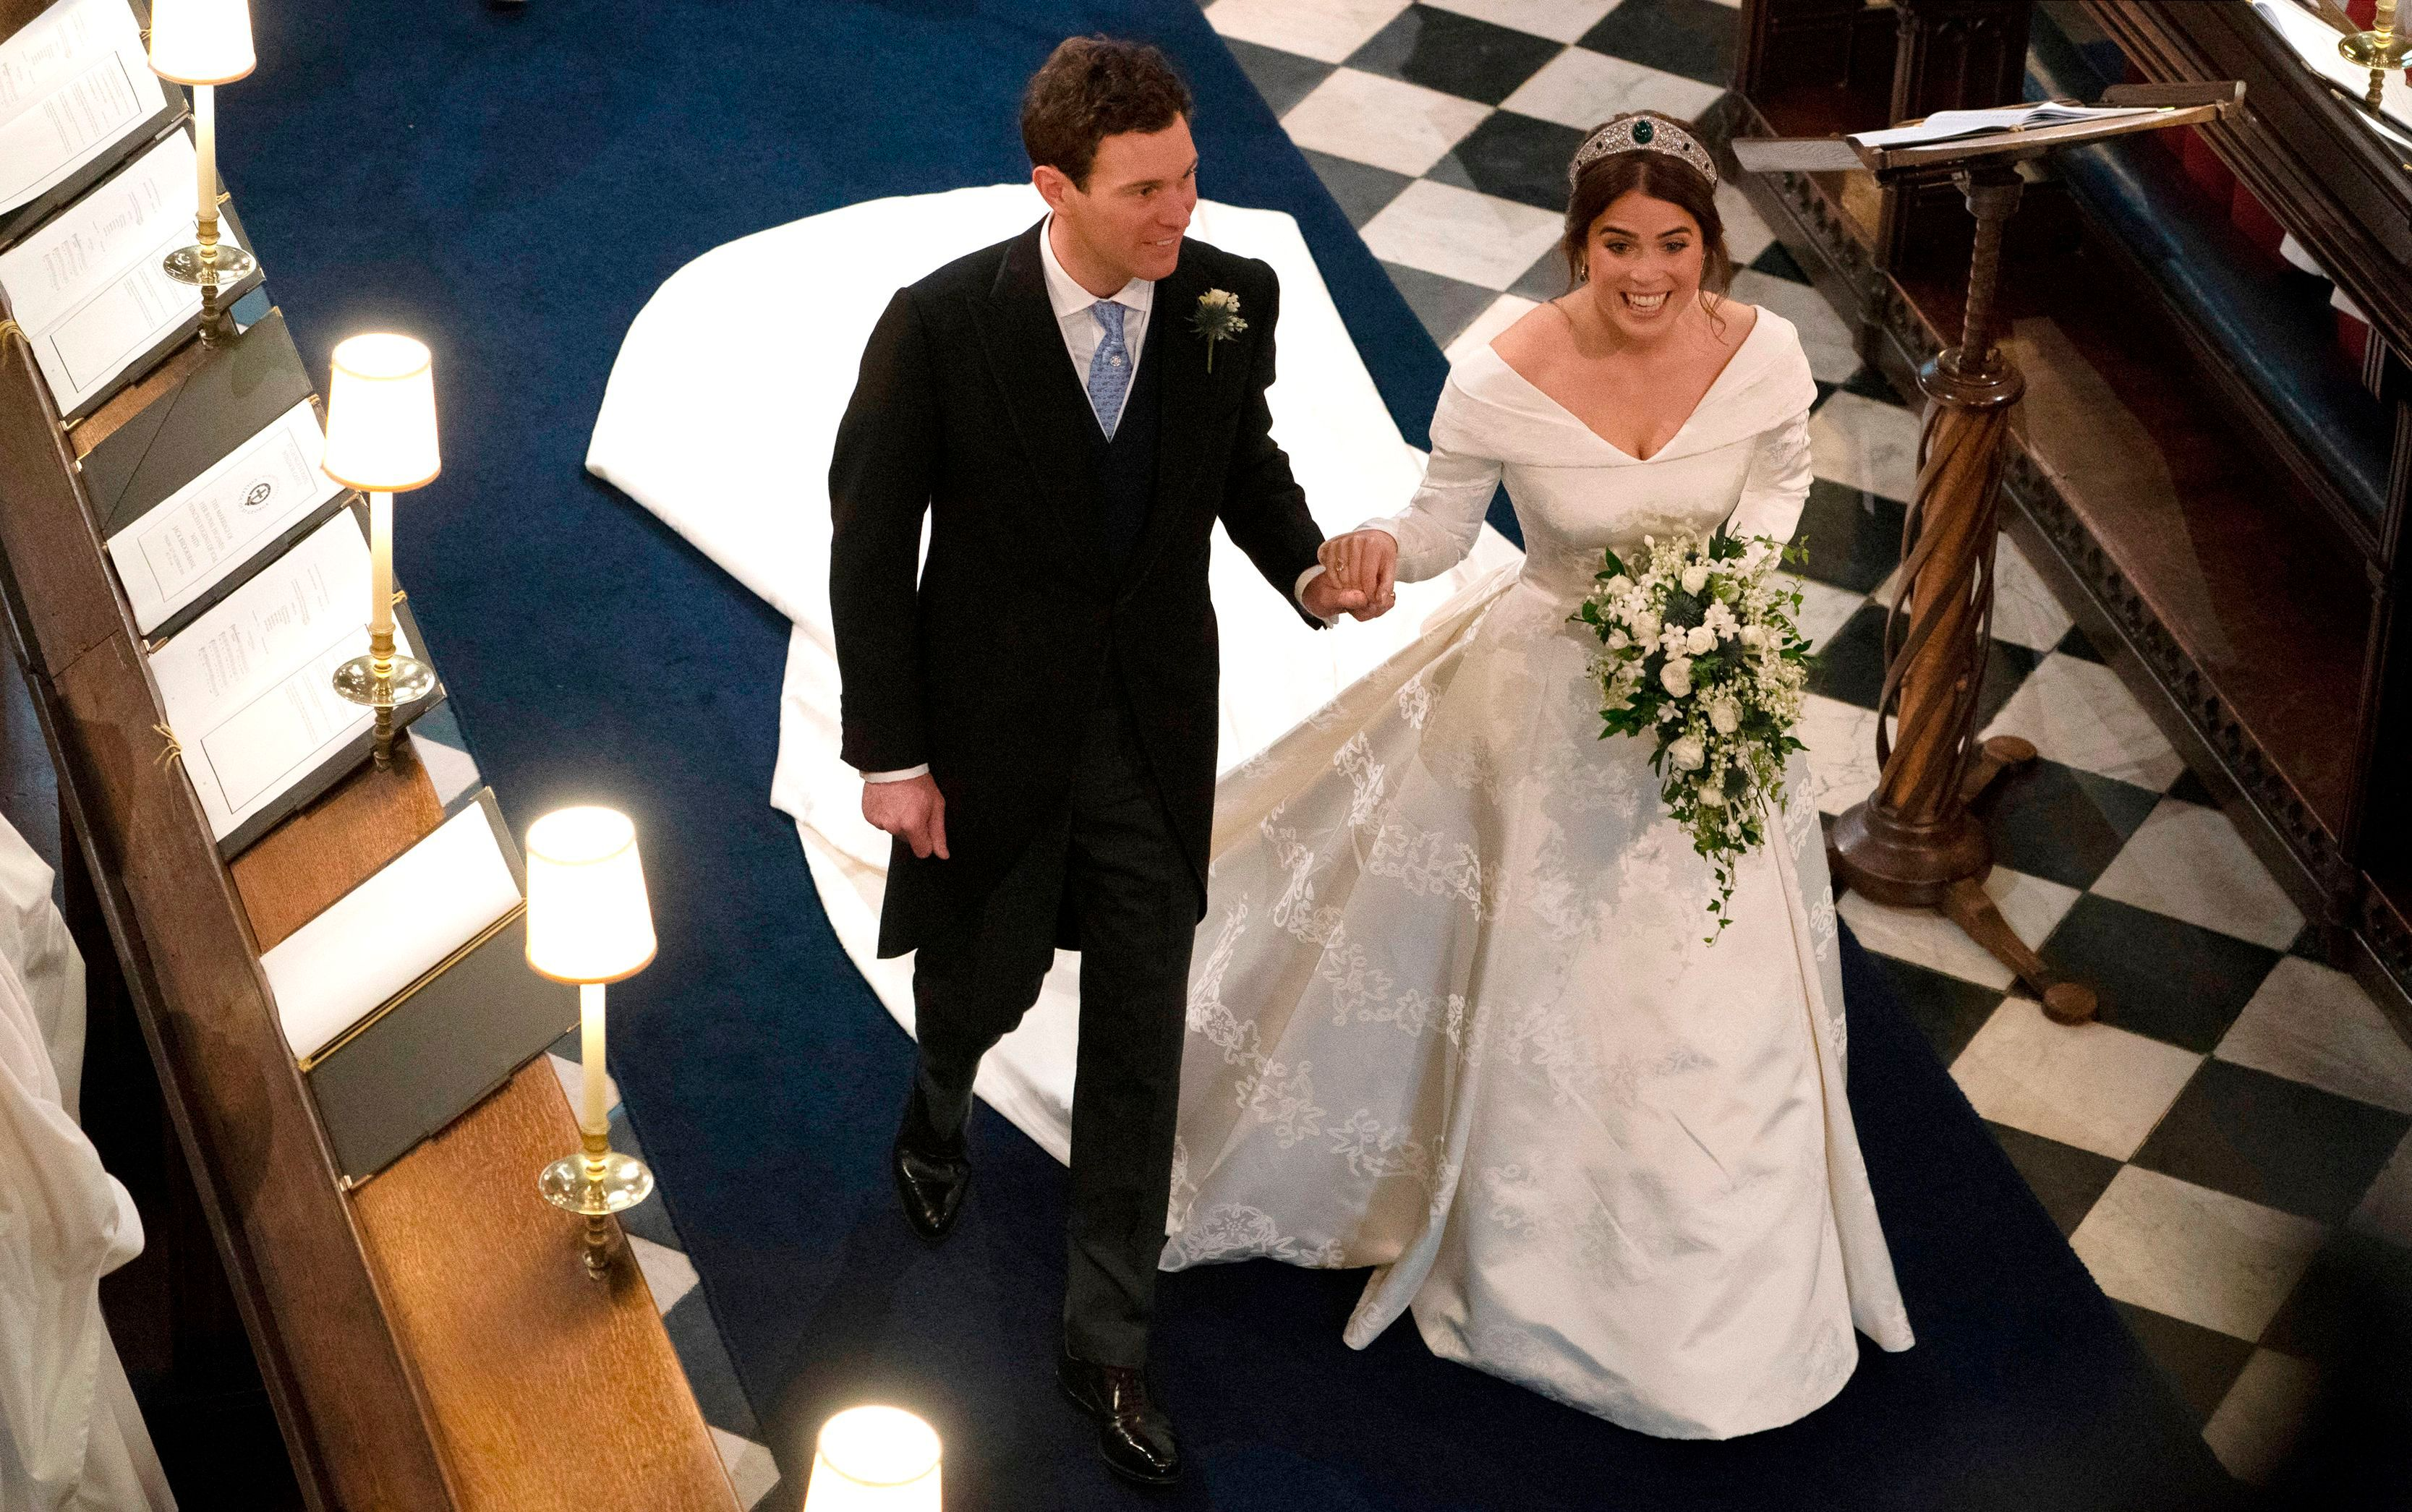 6 major moments from Princess Eugenie and Jack Brooksbanks' royal wedding day